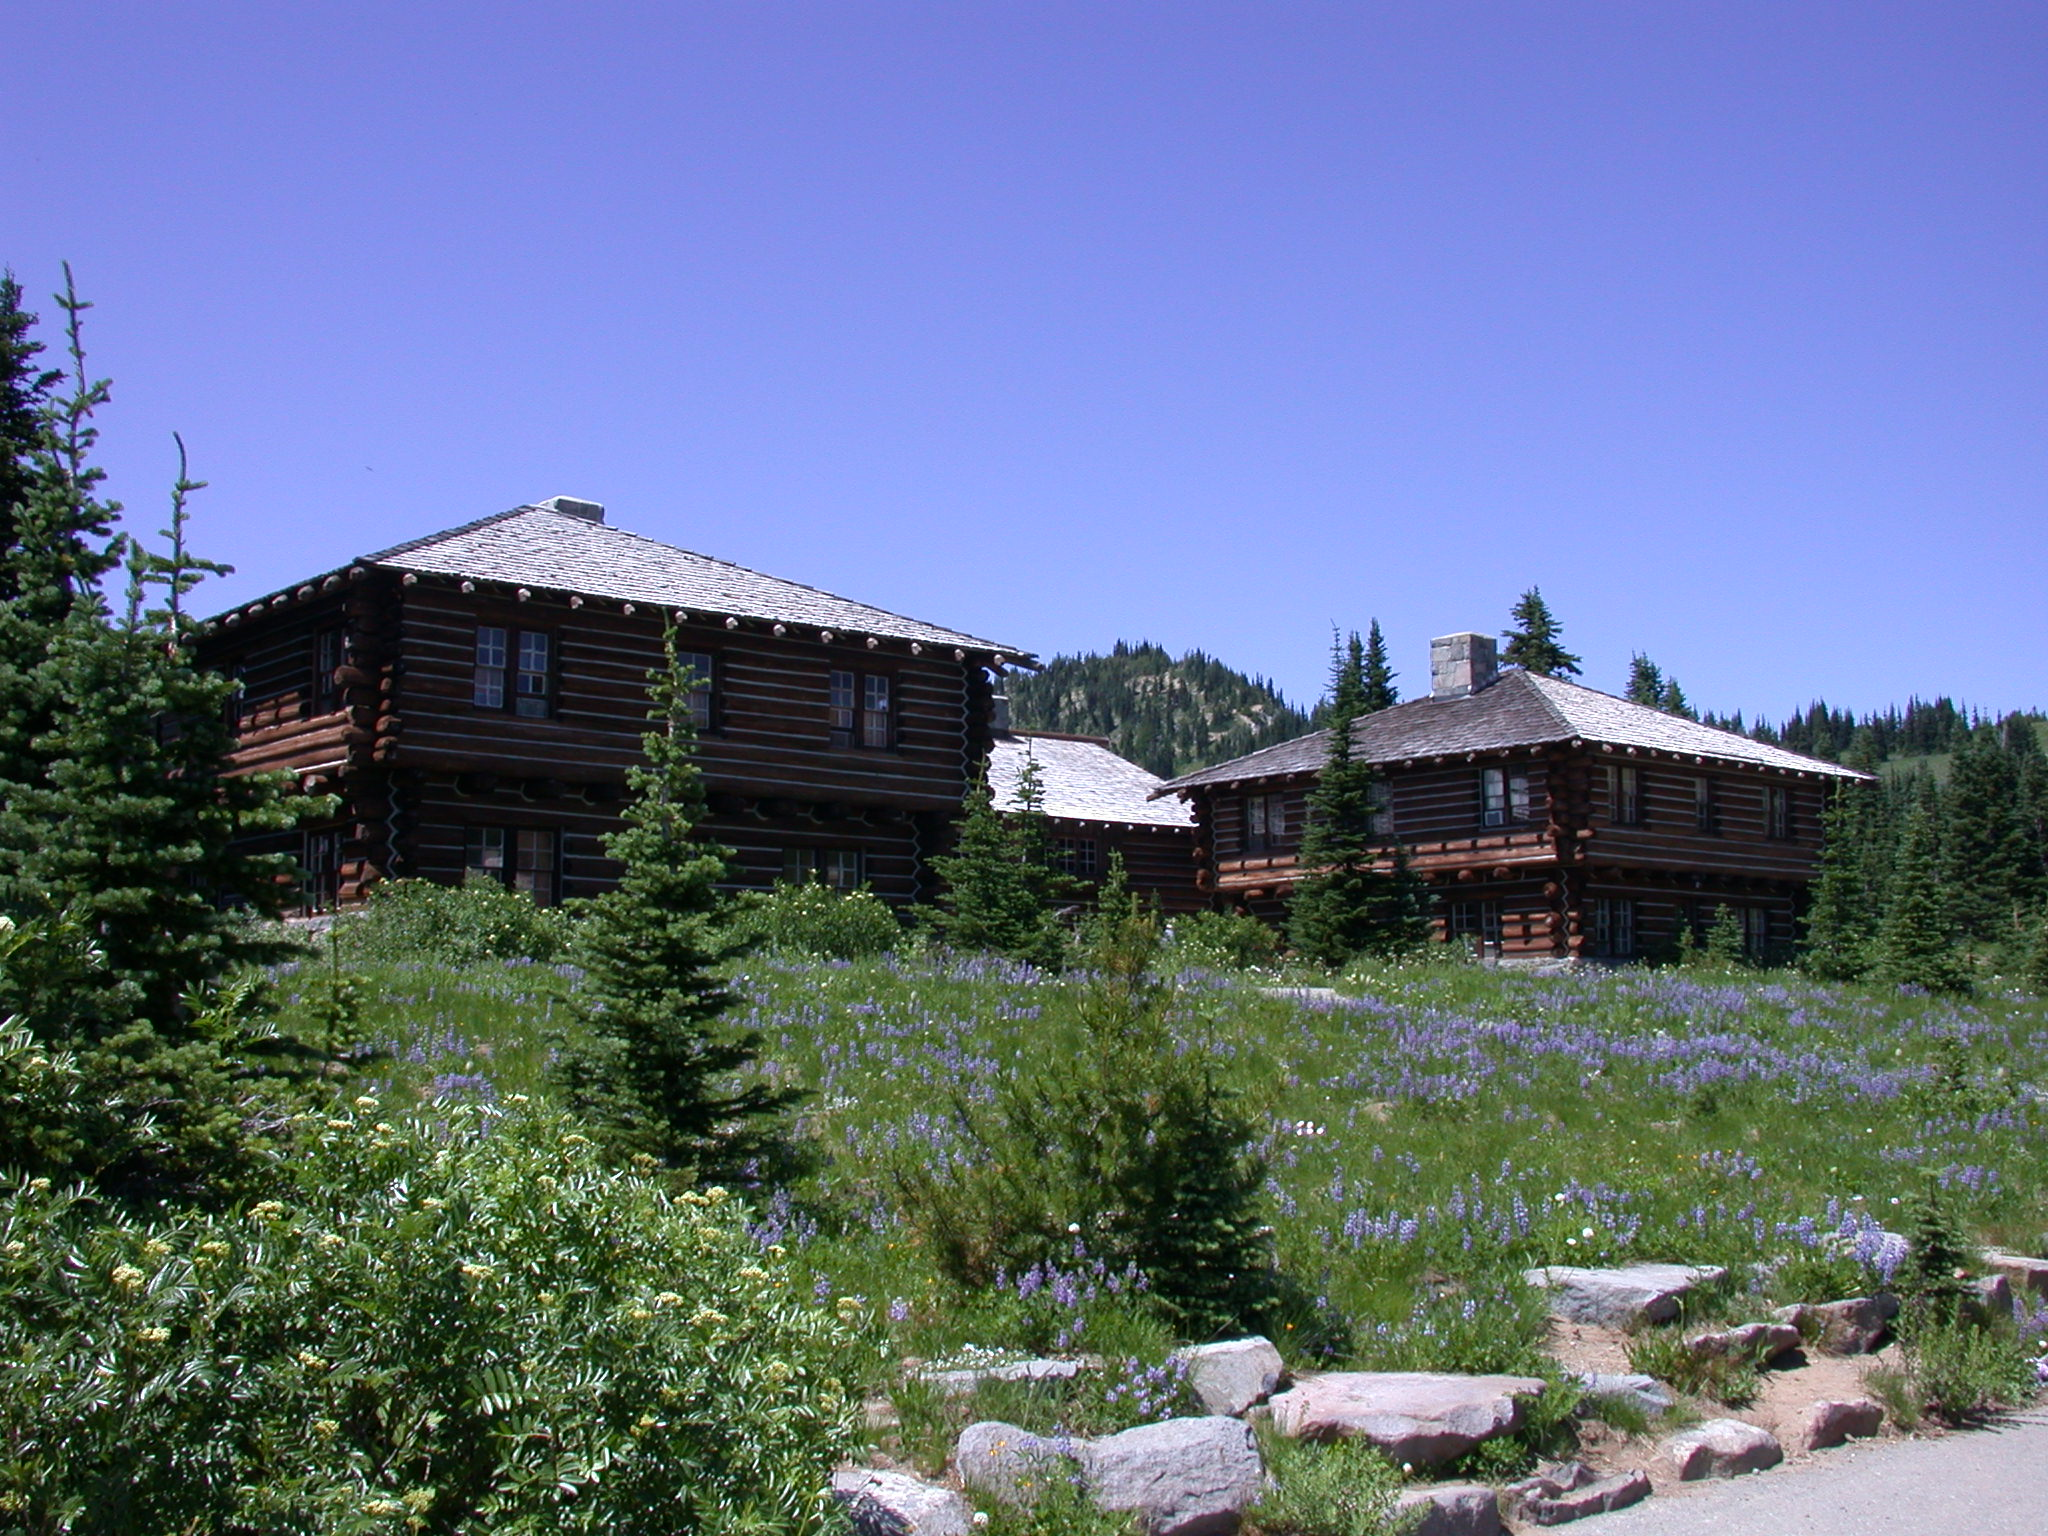 Visitor Center and Employee Residences at Sunrise Camp on Mount Rainier